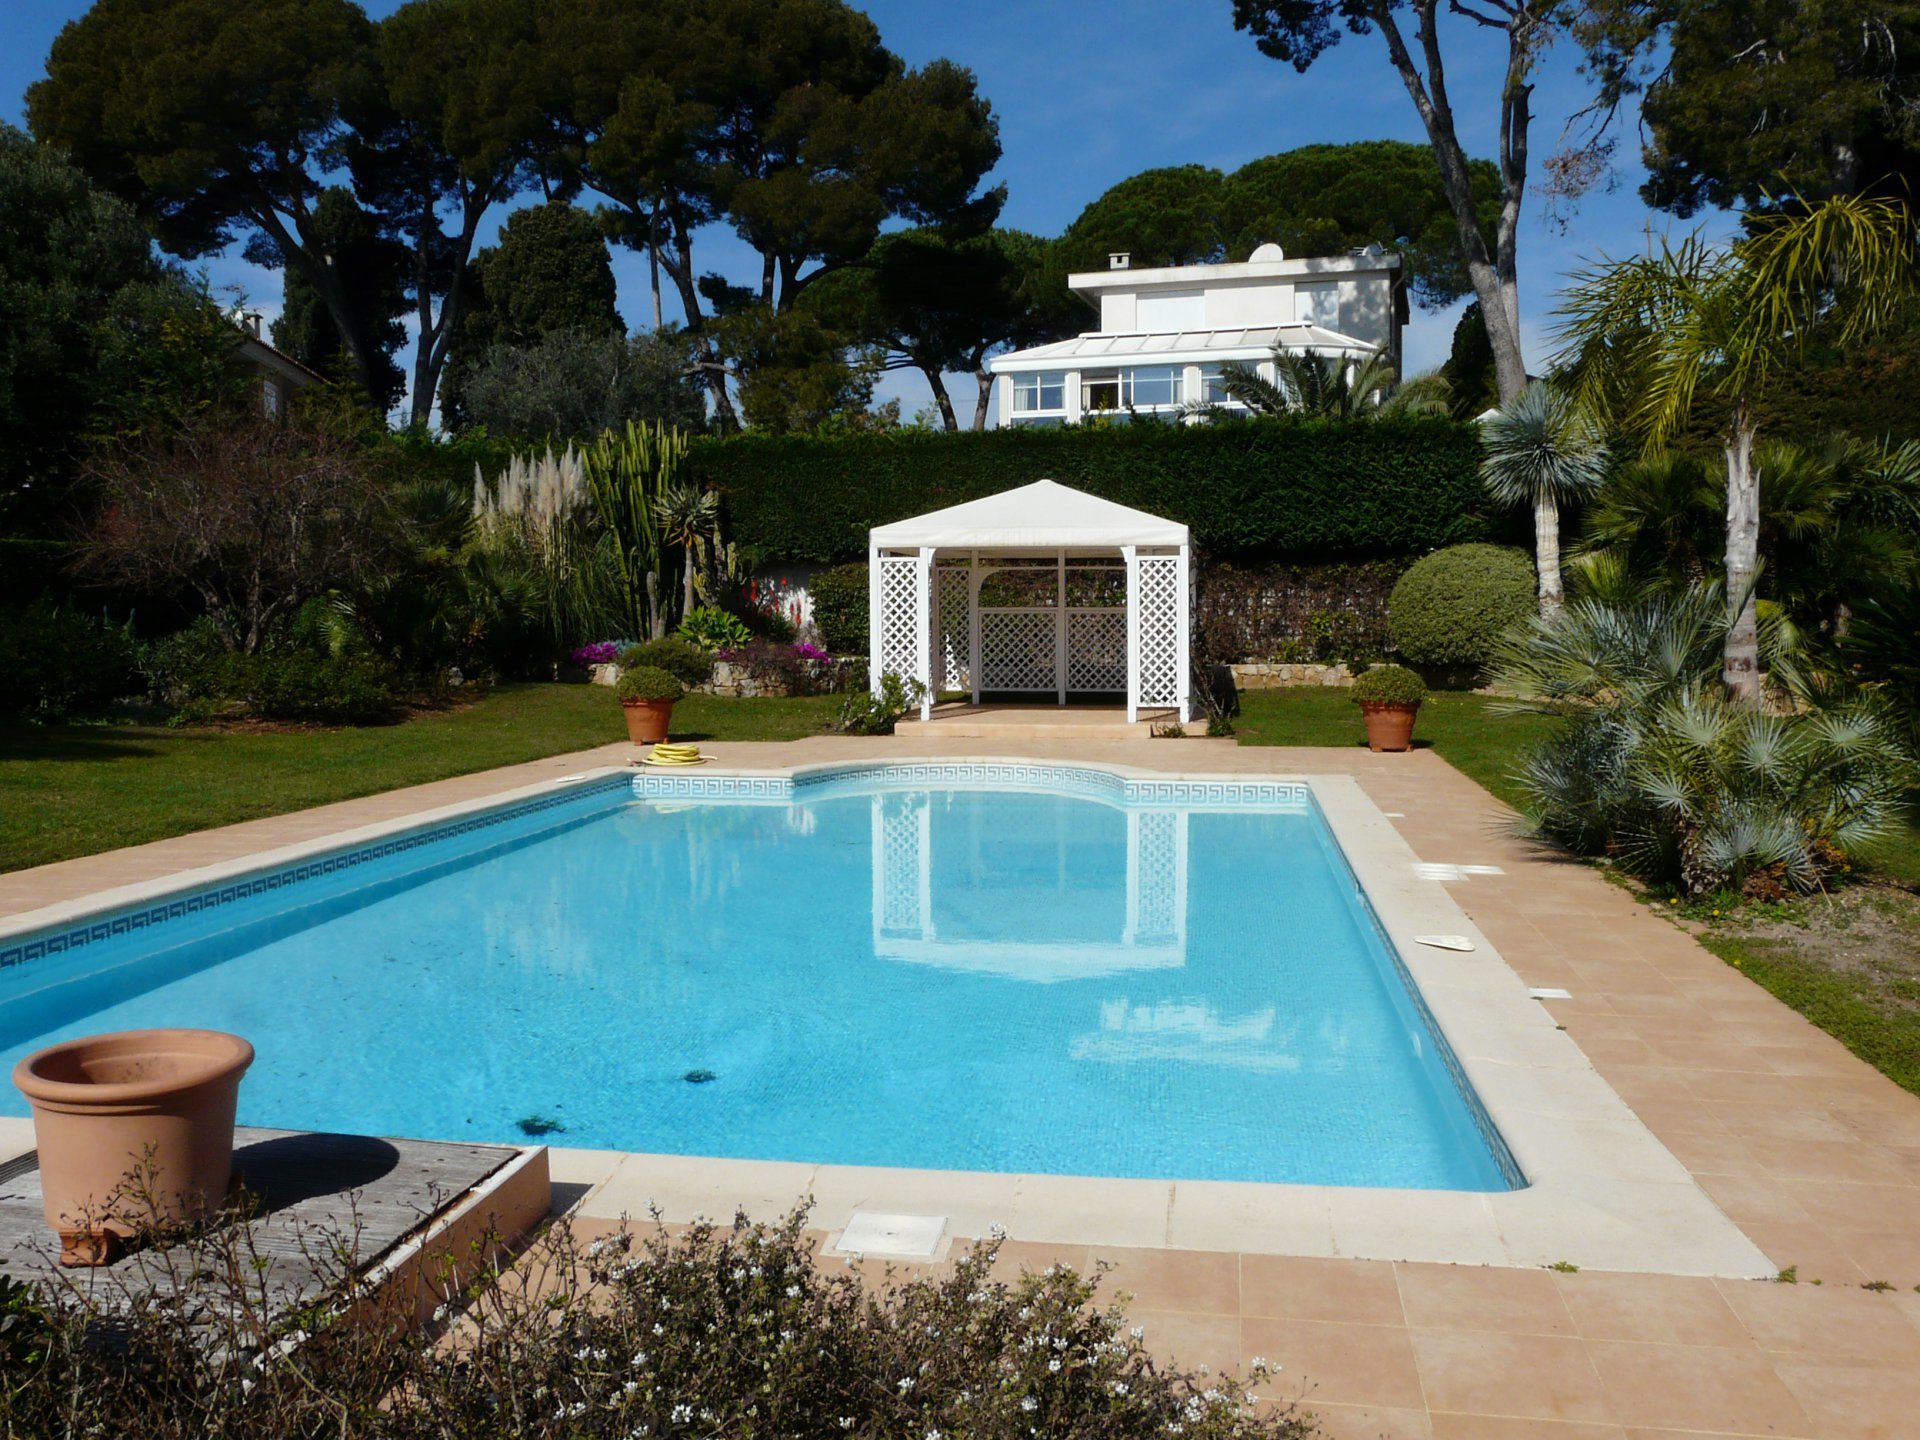 CAP D'ANTIBES - PRIVATE SECURED DOMAIN - SUMMER AND EVENTS RENTAL